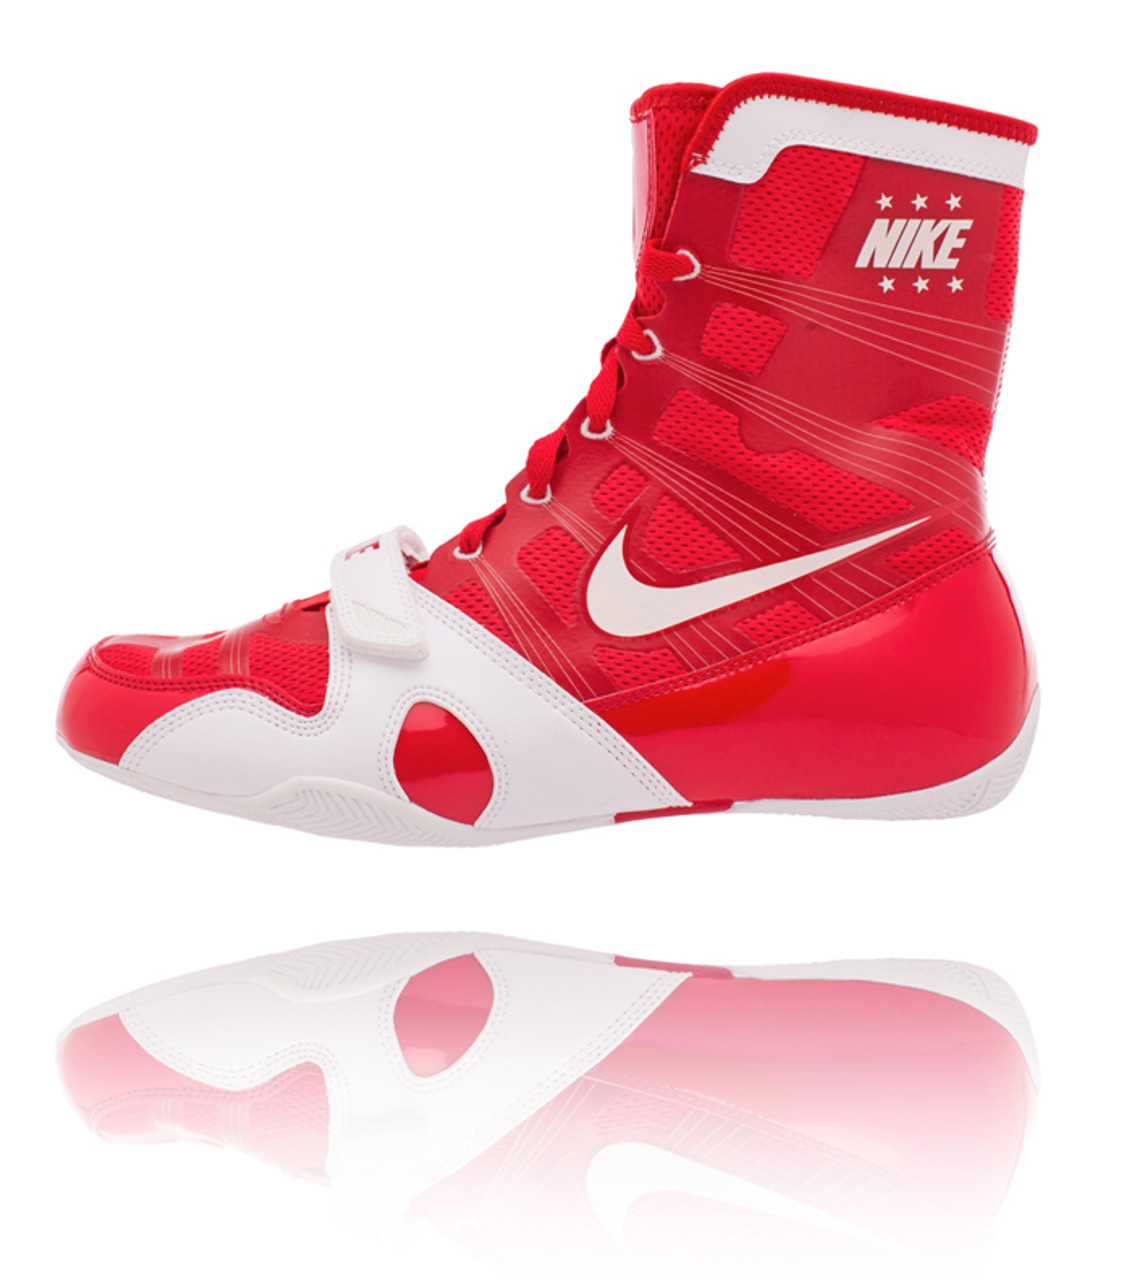 Nike HyperKO - Red Boxing Shoes - PRO